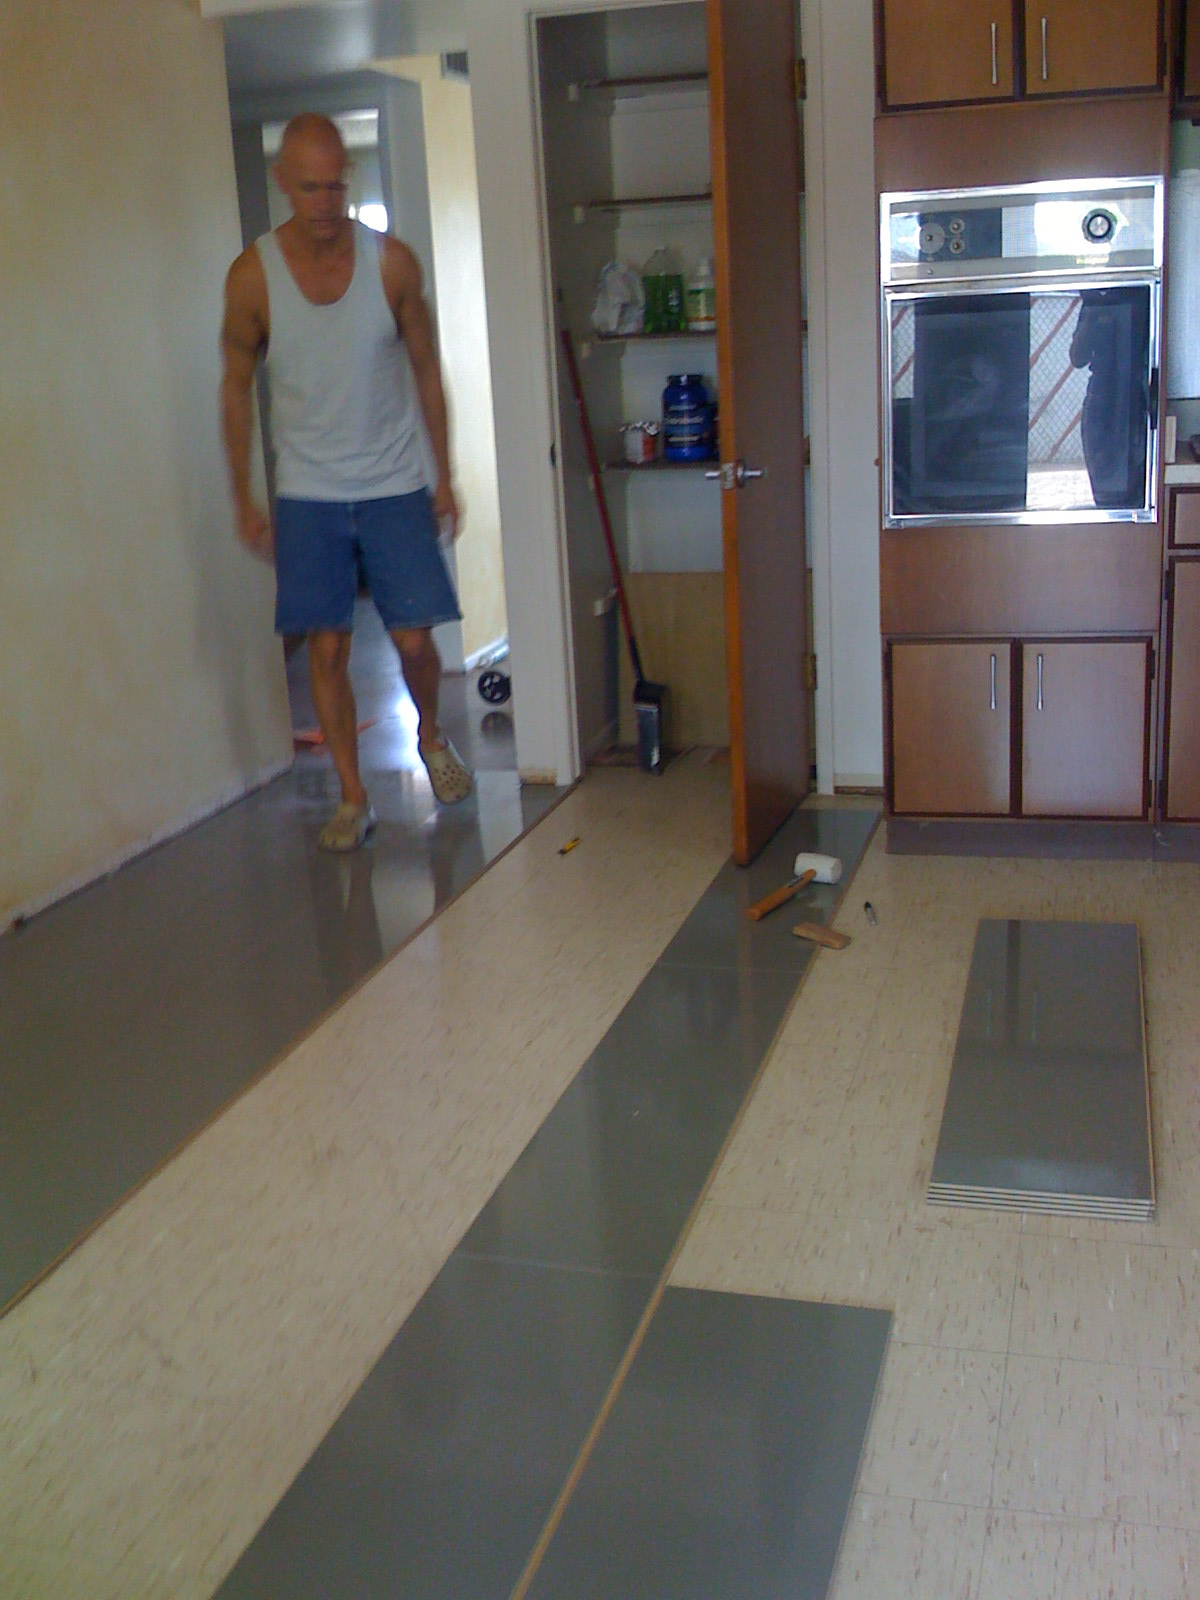 beautiful new flooring in the kitchen laminate flooring for kitchen It s a simple click in place floor no adhesive no underlayment required It took us about four hours to install it in the sf kitchen